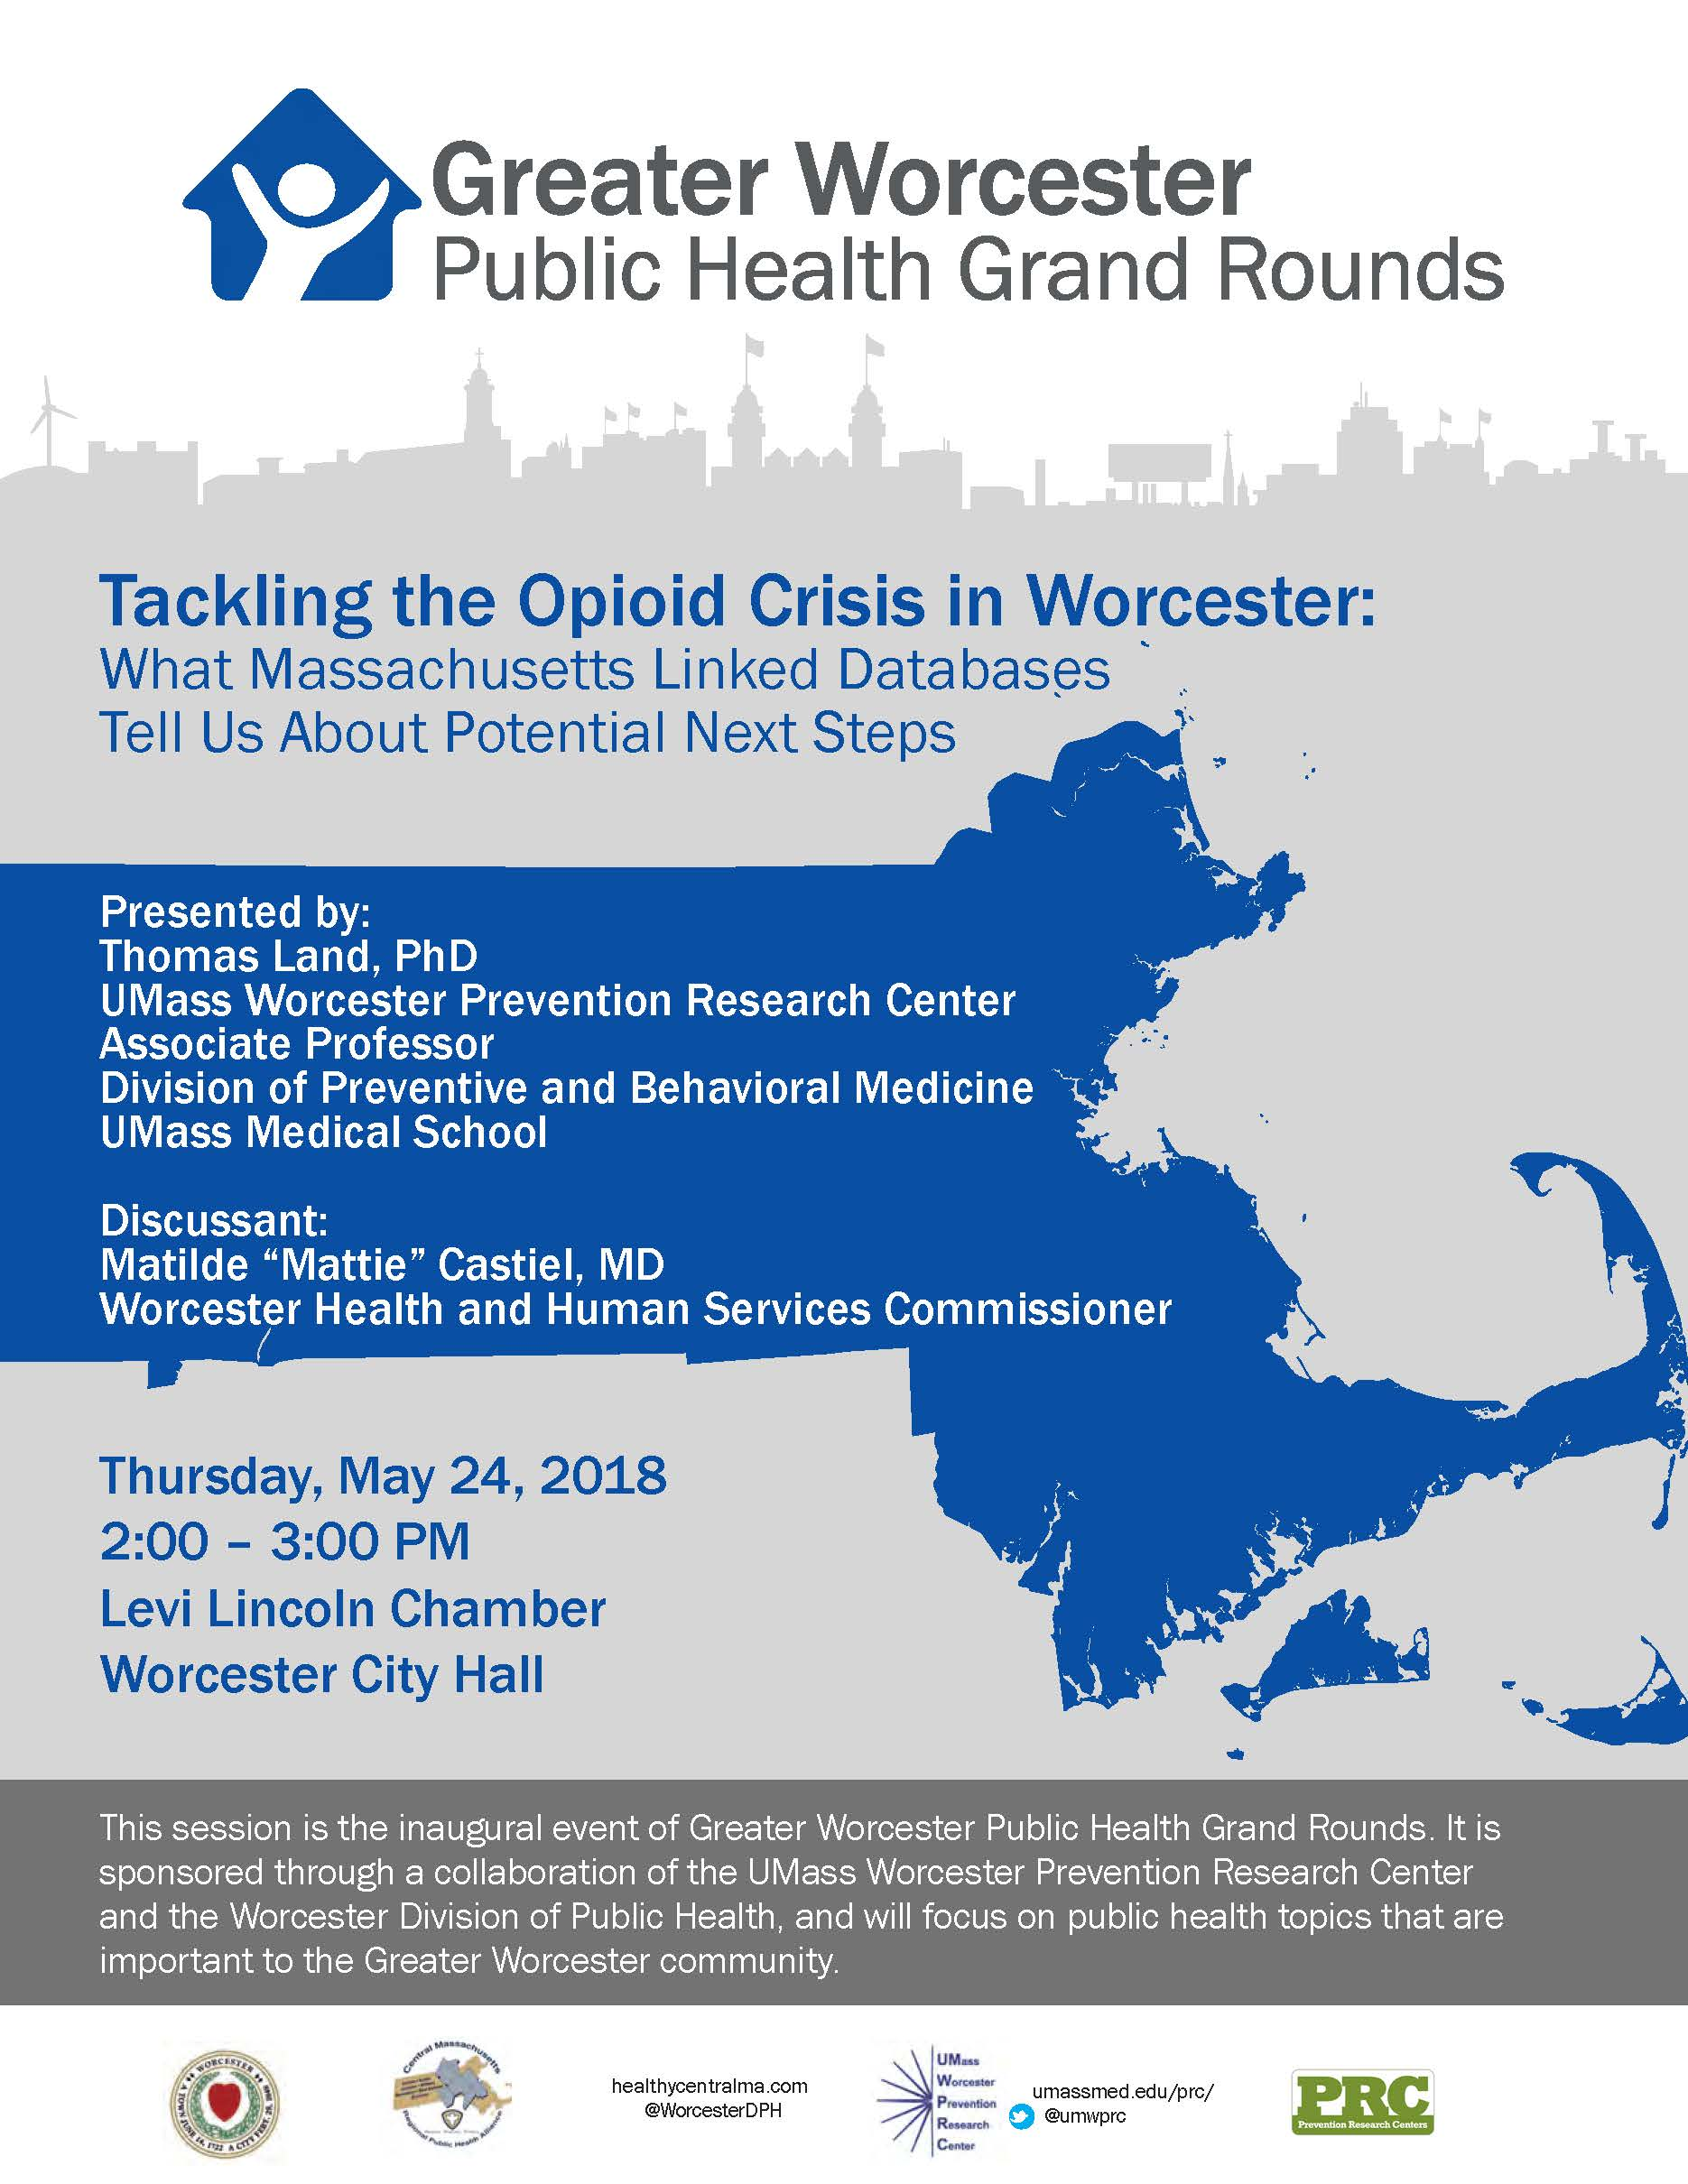 Greater Worcester Public Health Grand Rounds